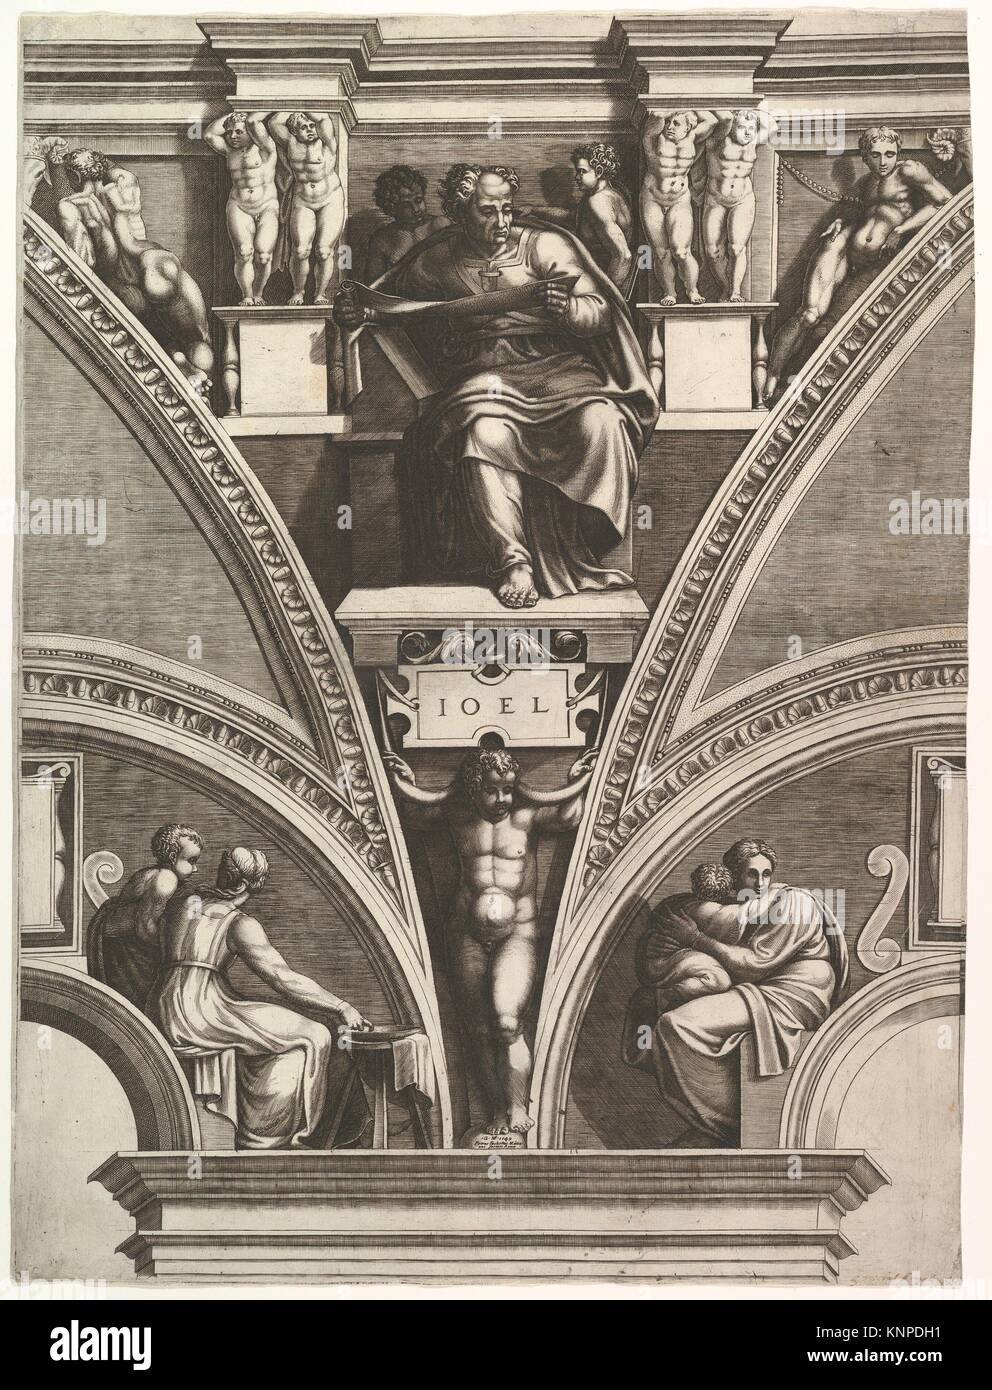 The Prophet Joel; from the series of Prophets and Sibyls in the Sistine Chapel. Artist: Engraved by Giorgio Ghisi Stock Photo